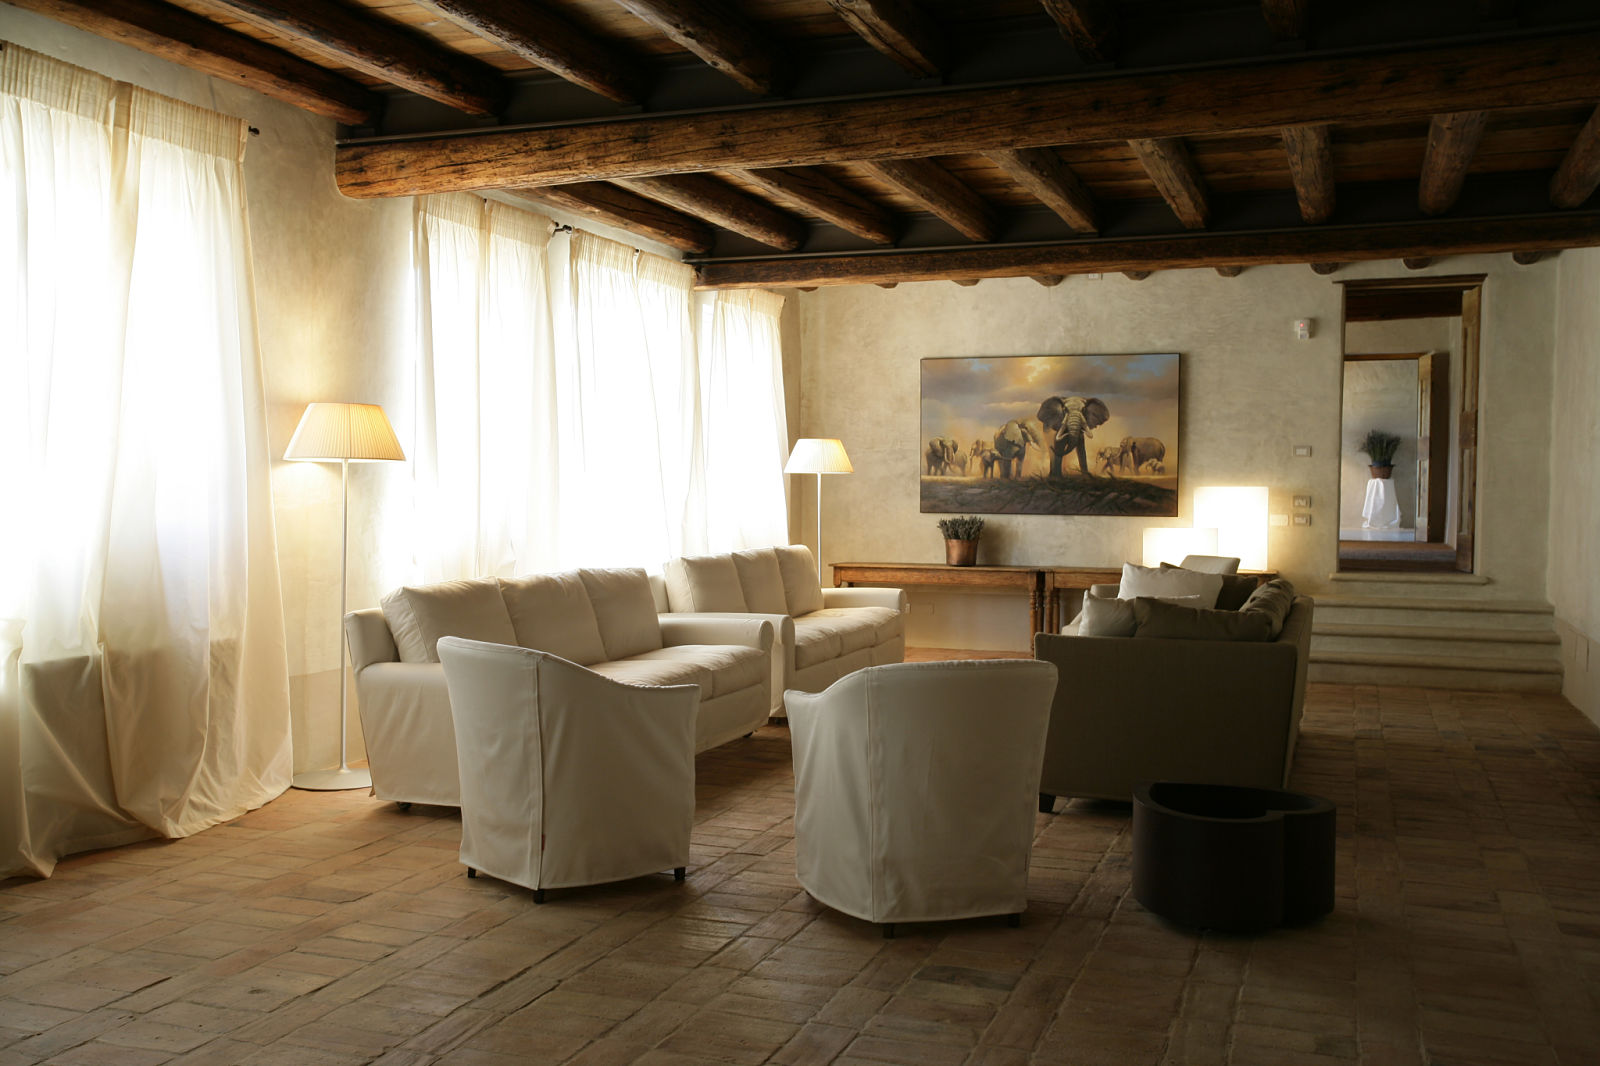 relais corte guastalla hotel mit charme auf gardasee venetien. Black Bedroom Furniture Sets. Home Design Ideas